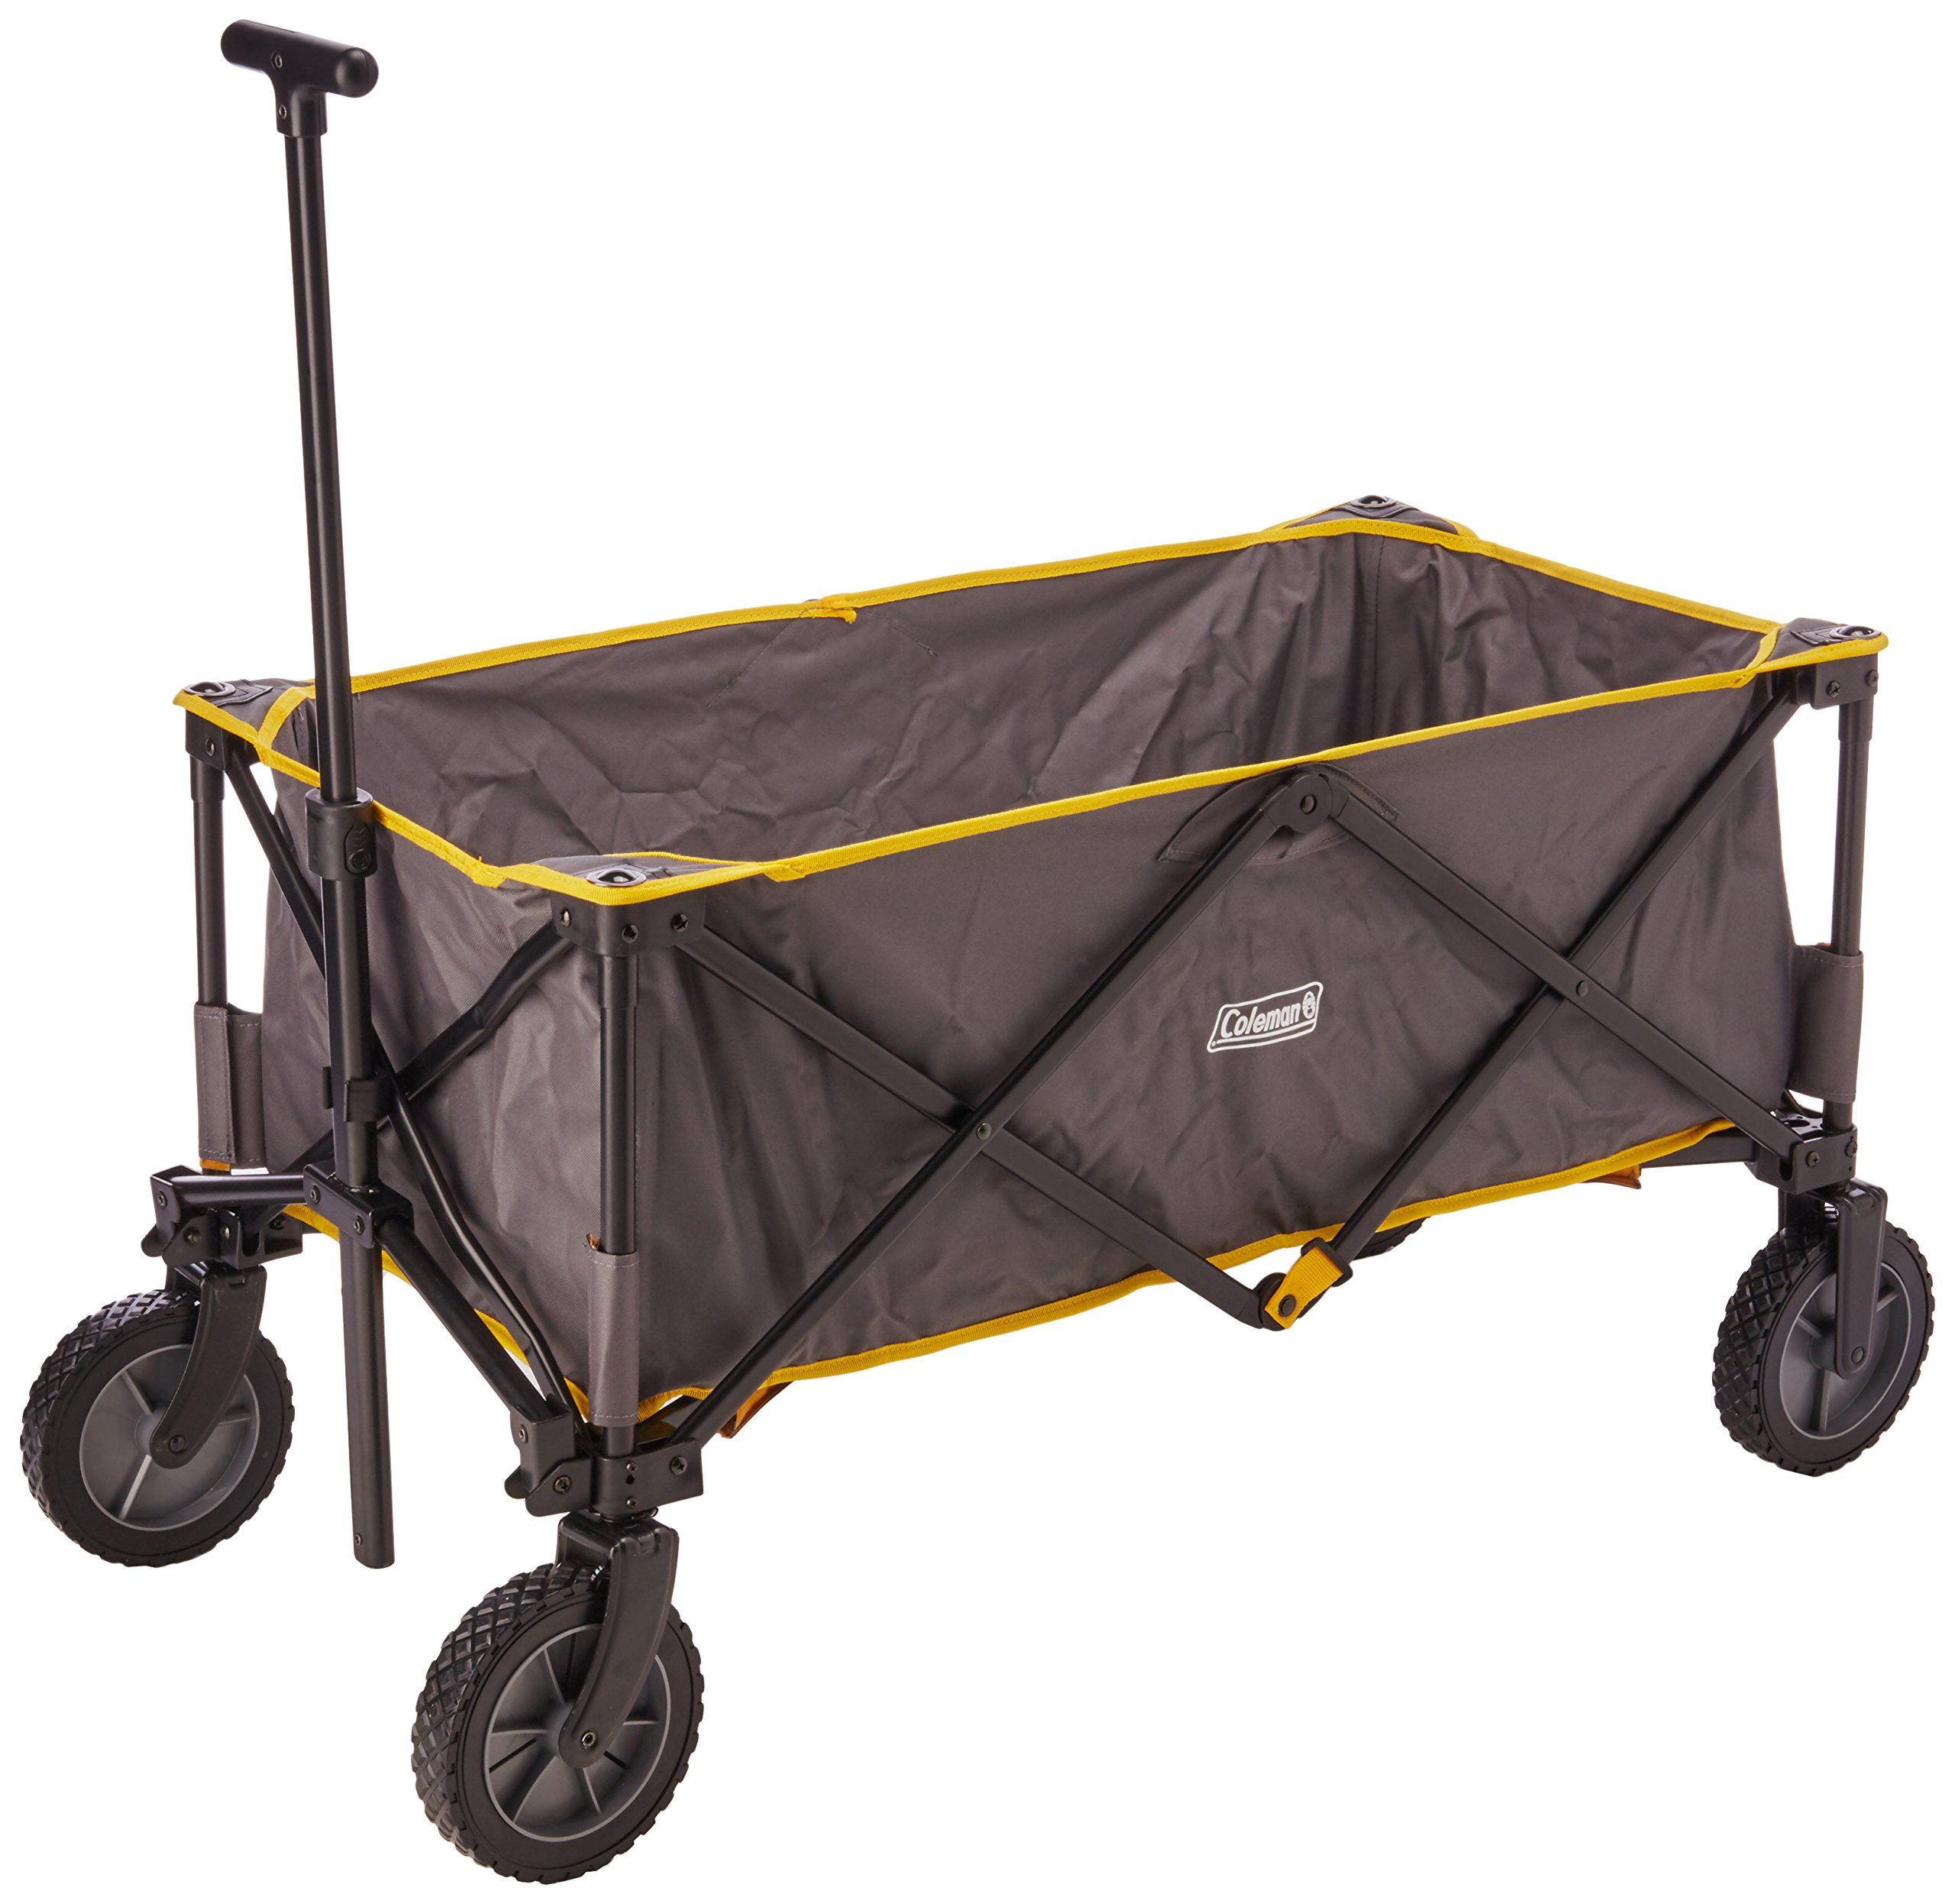 Coleman 2000023362 Camp Wagon Furniture, Gray by Coleman